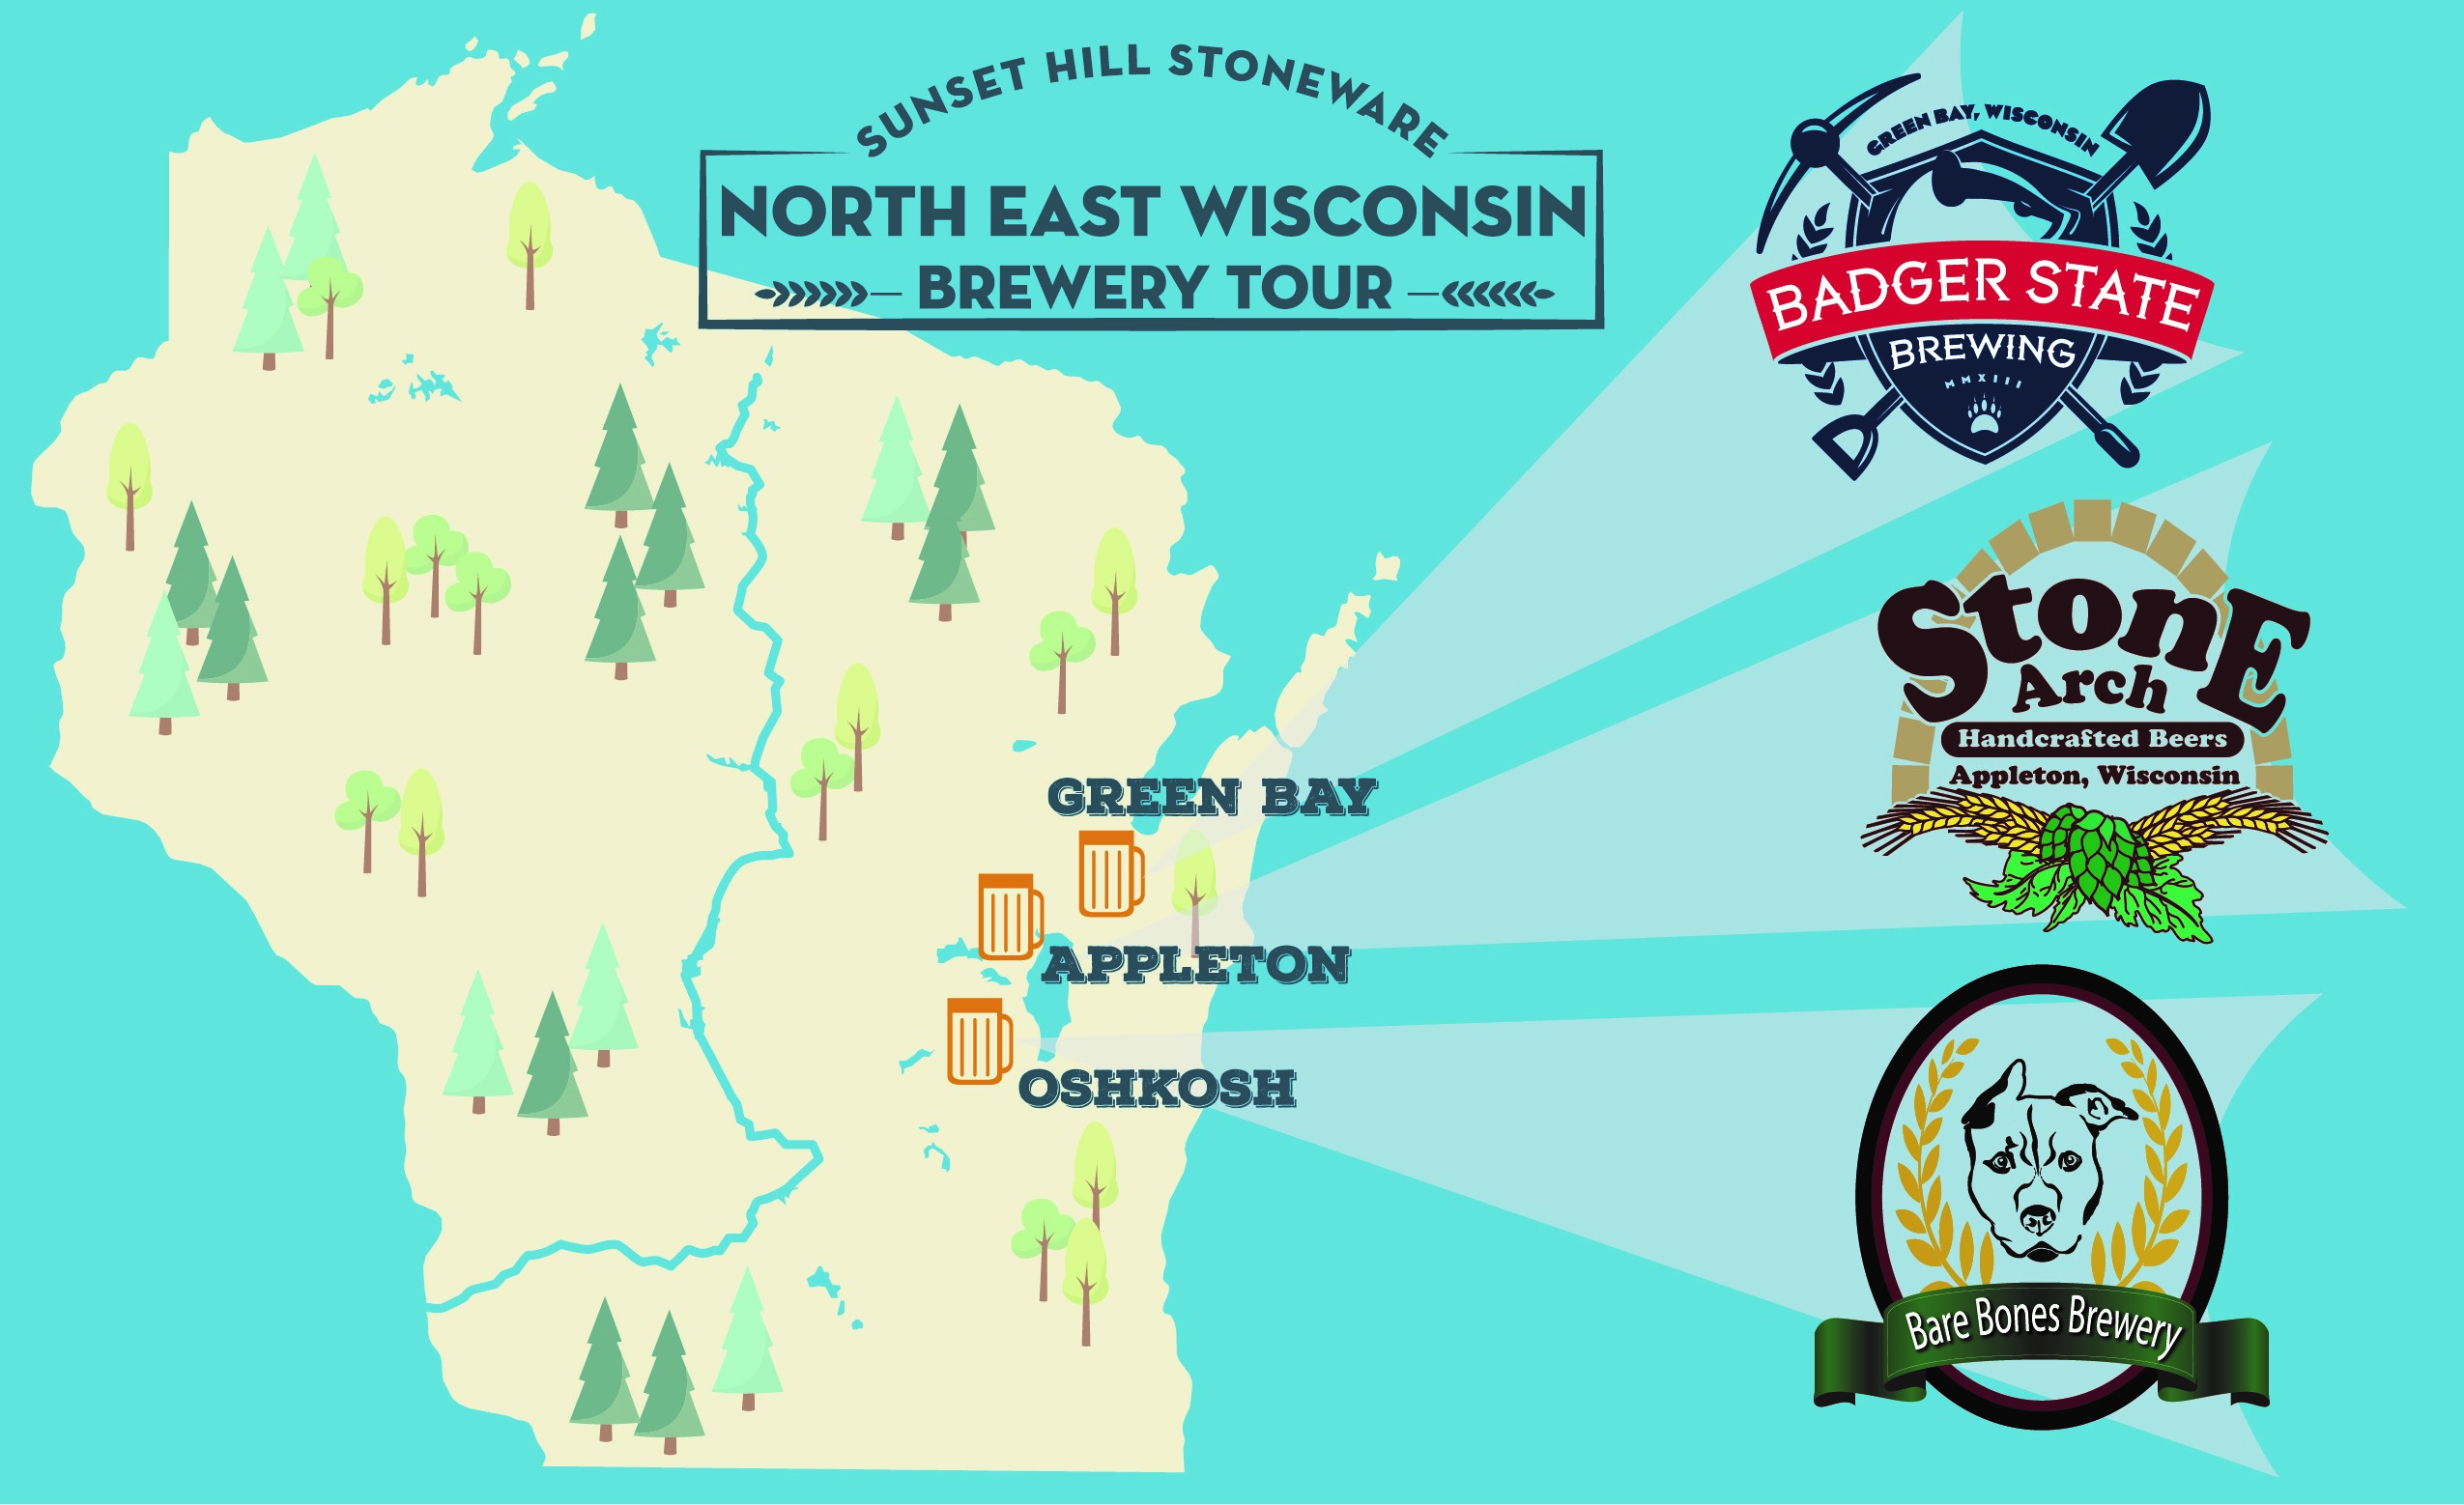 Brew Tour: Where to Find Sunset Hill Stoneware in Northeast Wisconsin